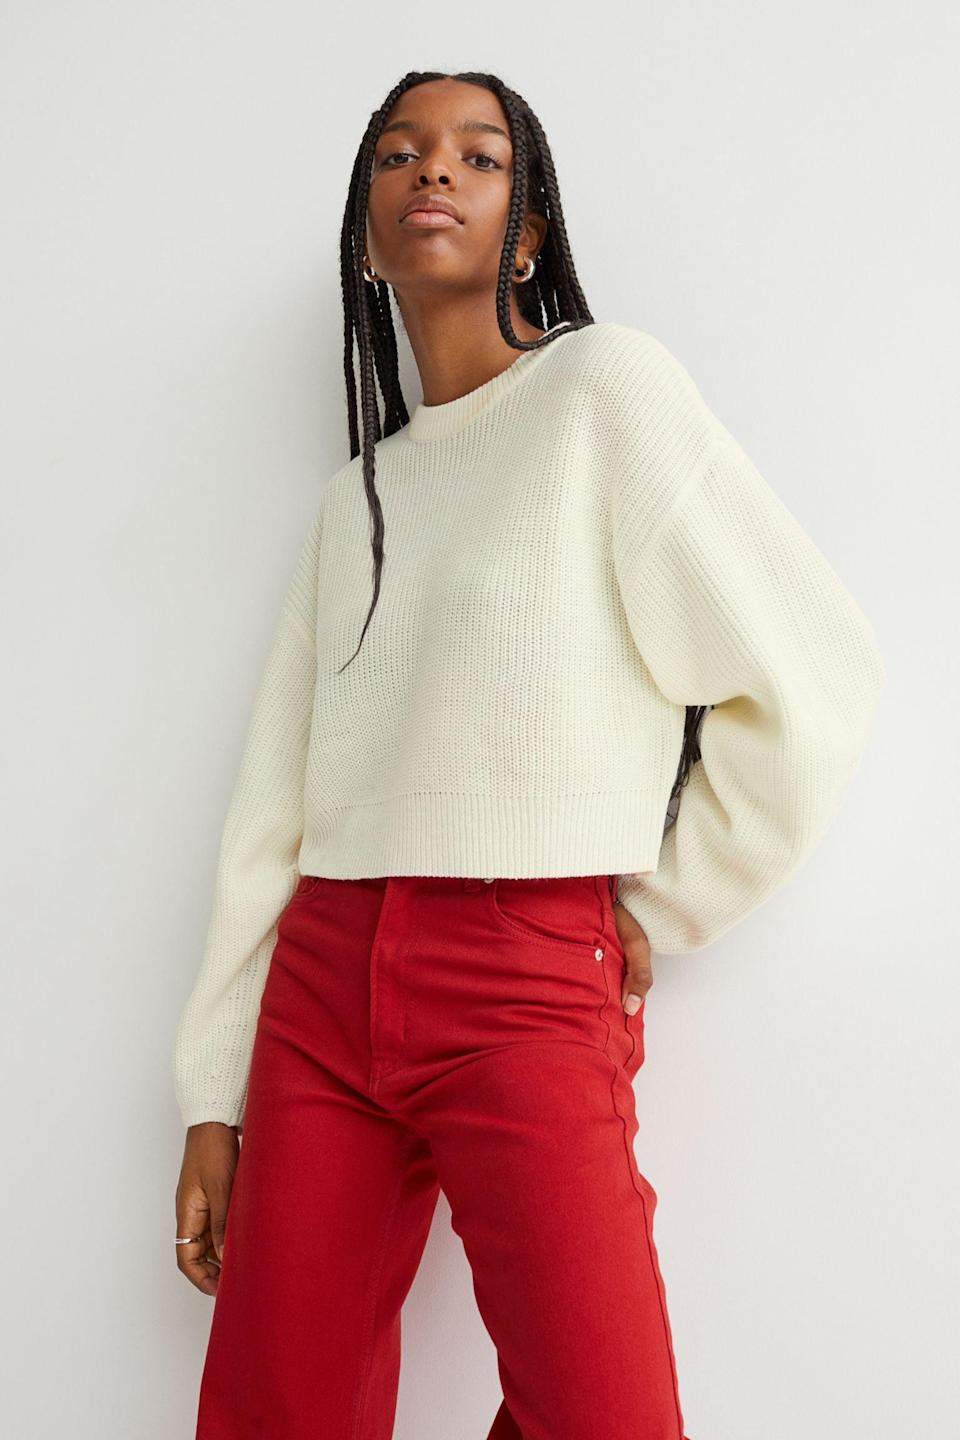 <p>This <span>Rib-Knit Sweater</span> ($18) styled with your favorite denim jeans? The most effortlessly cool and comfortable everyday look.</p>